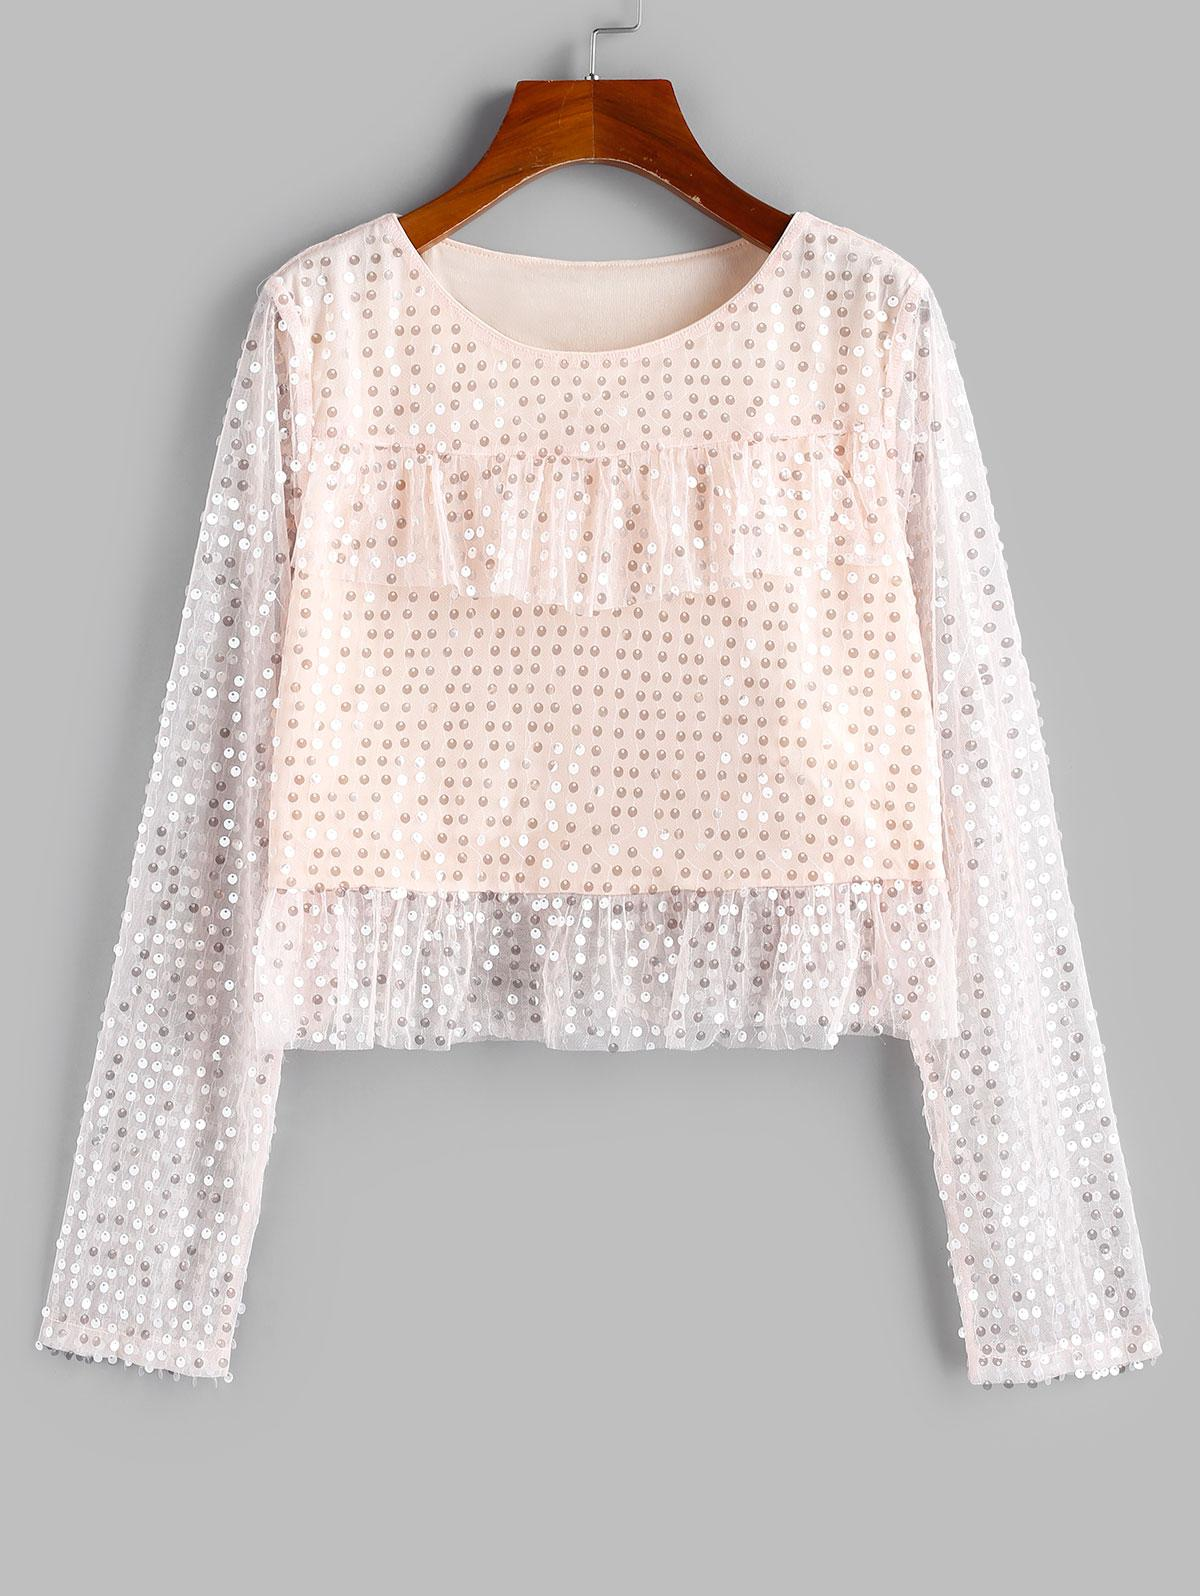 ZAFUL Disc Sequined Ruffle Lace Insert Blouse